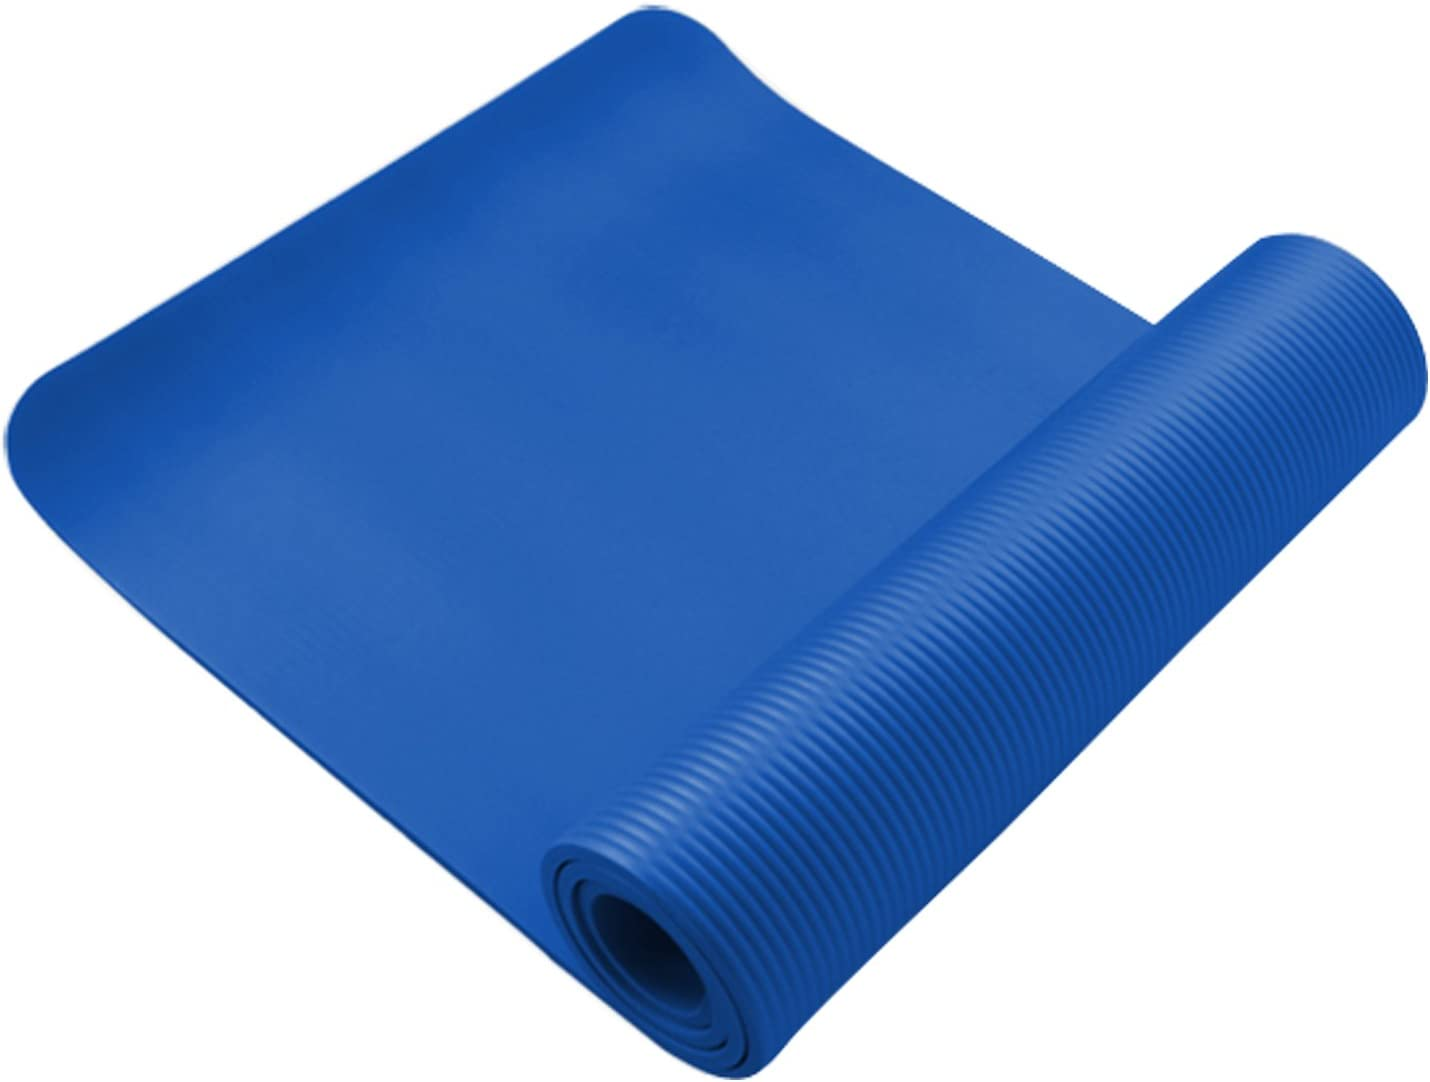 61 x 183cm Yoga Mat 10mm Thick Gym Exercise Fitness Pilates Workout Mat Non Slip